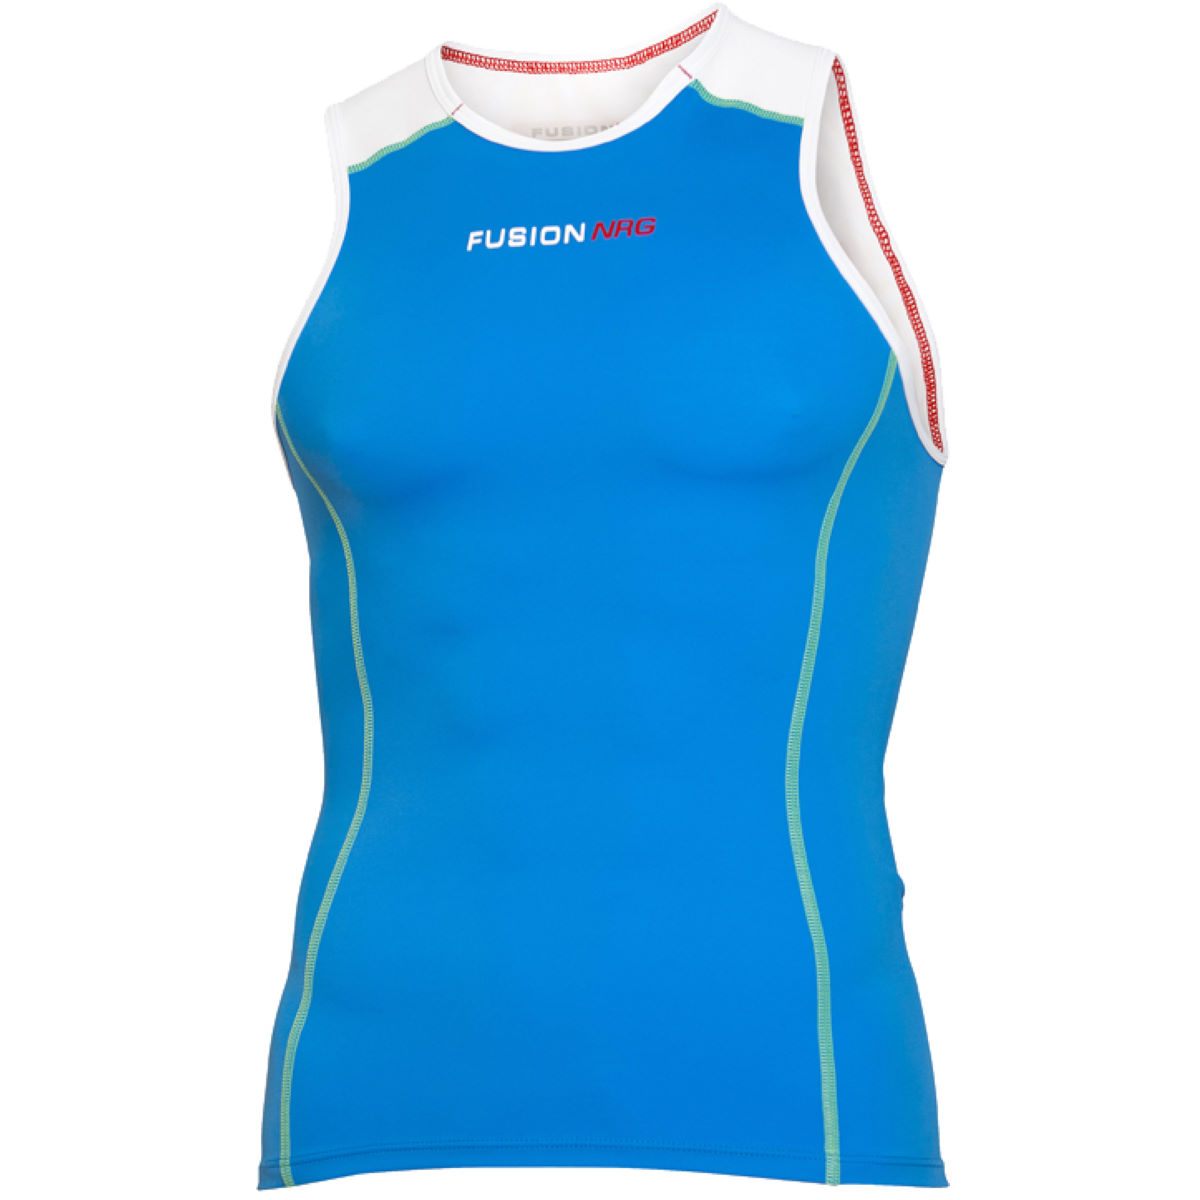 Top de triatlón Fusion - Tops de triatlón